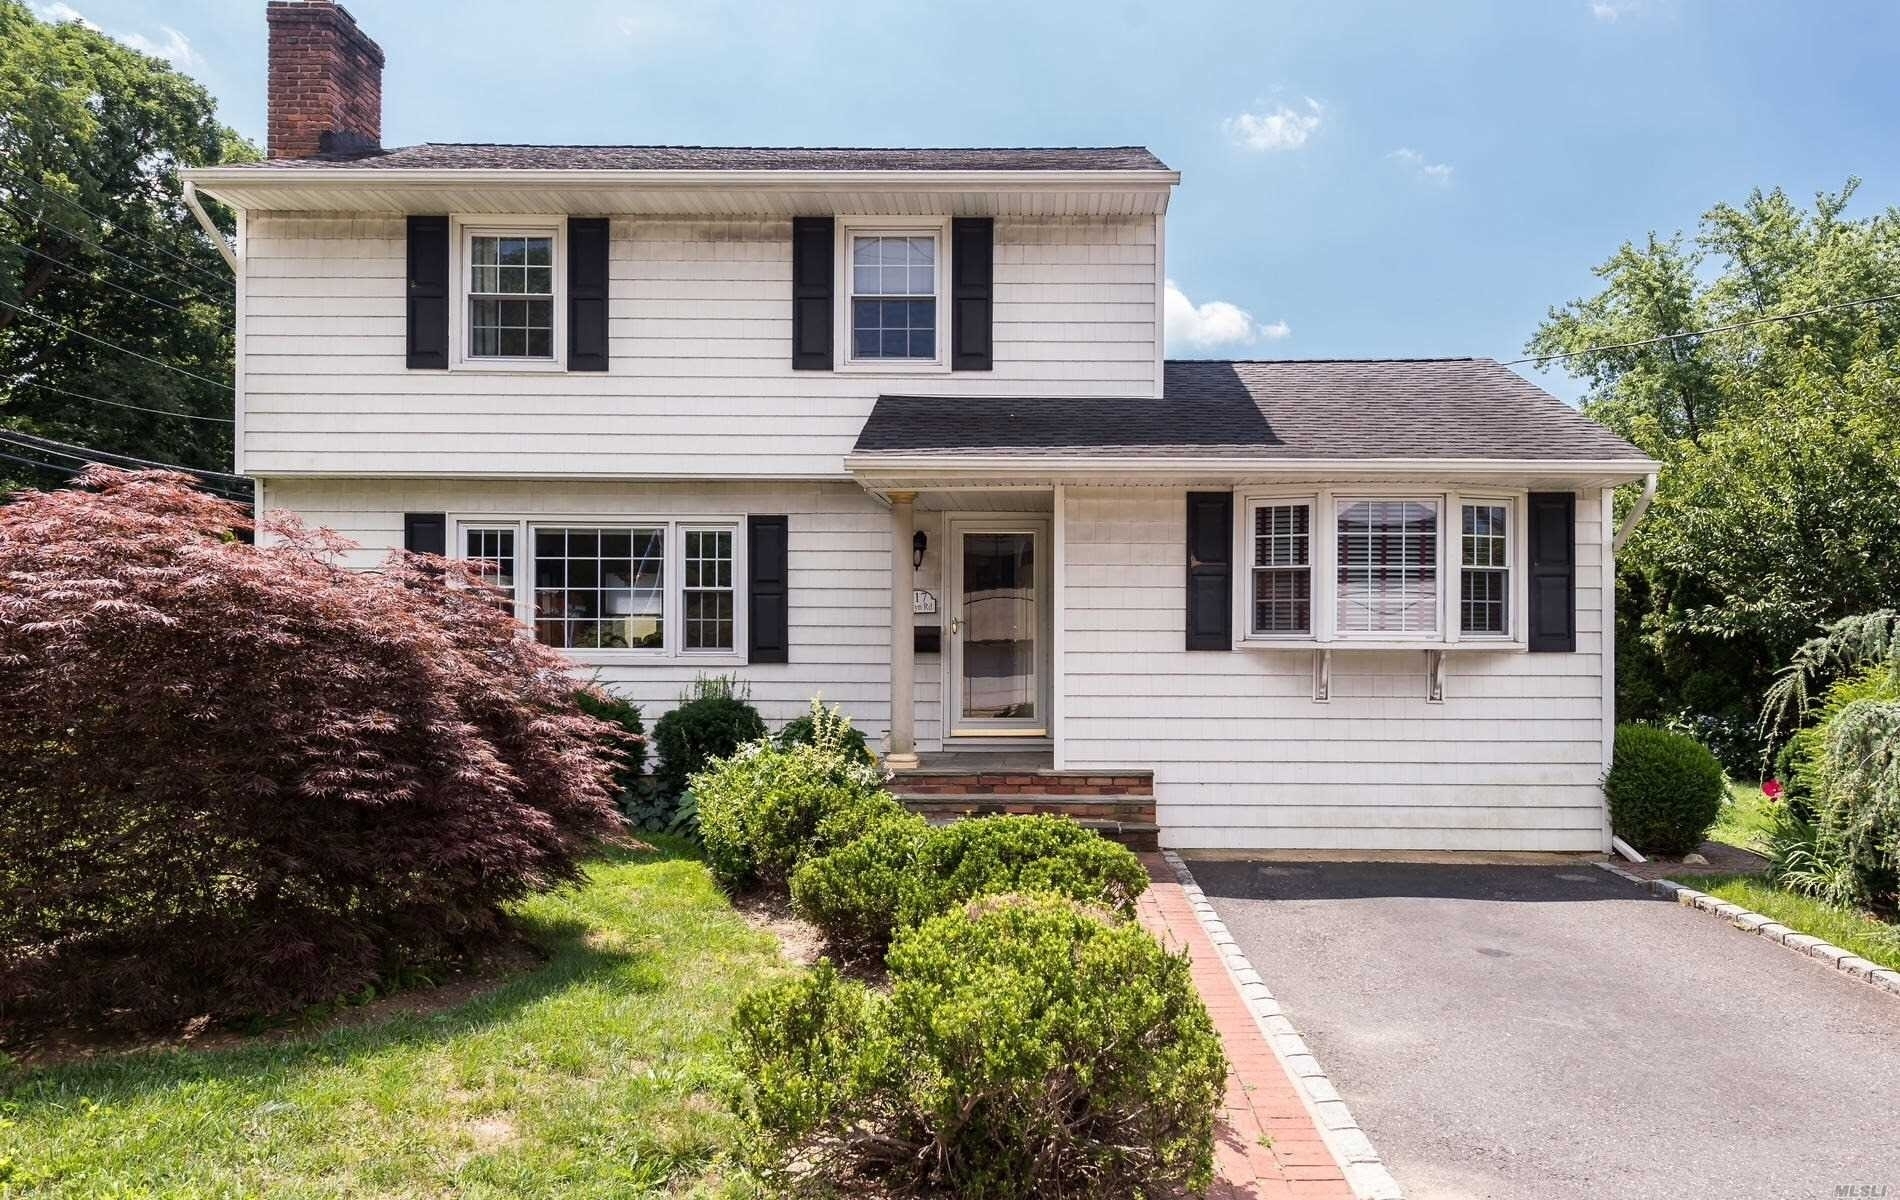 Property at Roslyn Heights, NY 11577